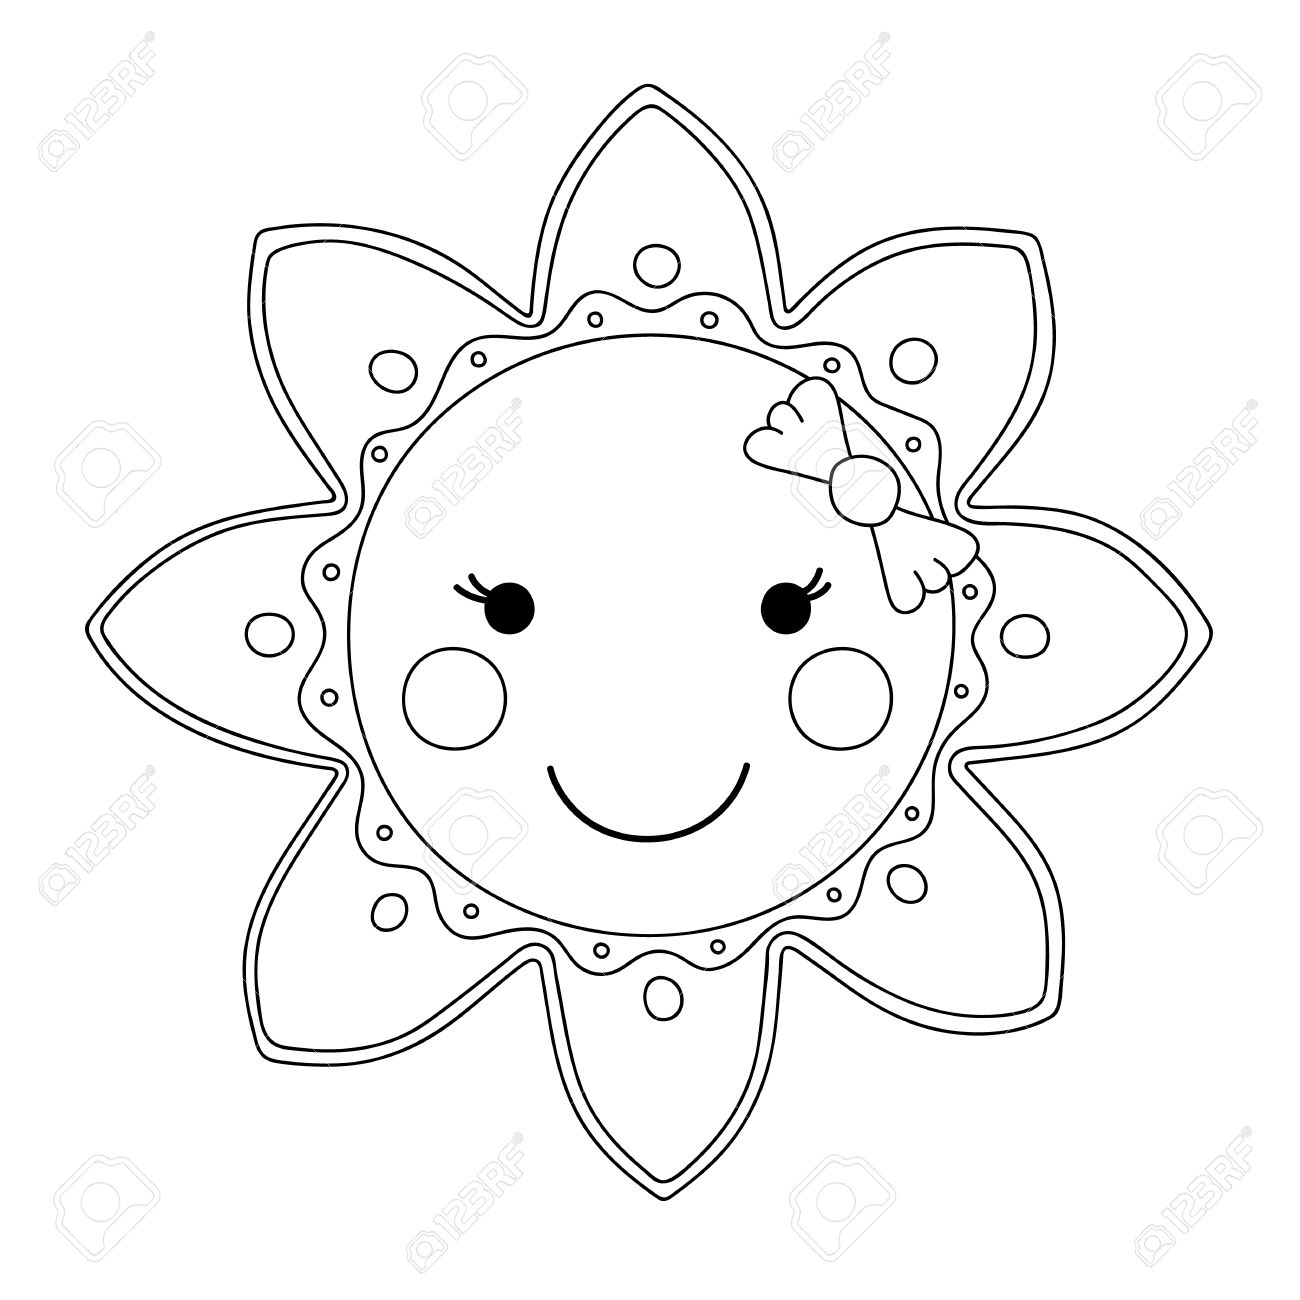 Cartoon Sun Drawing